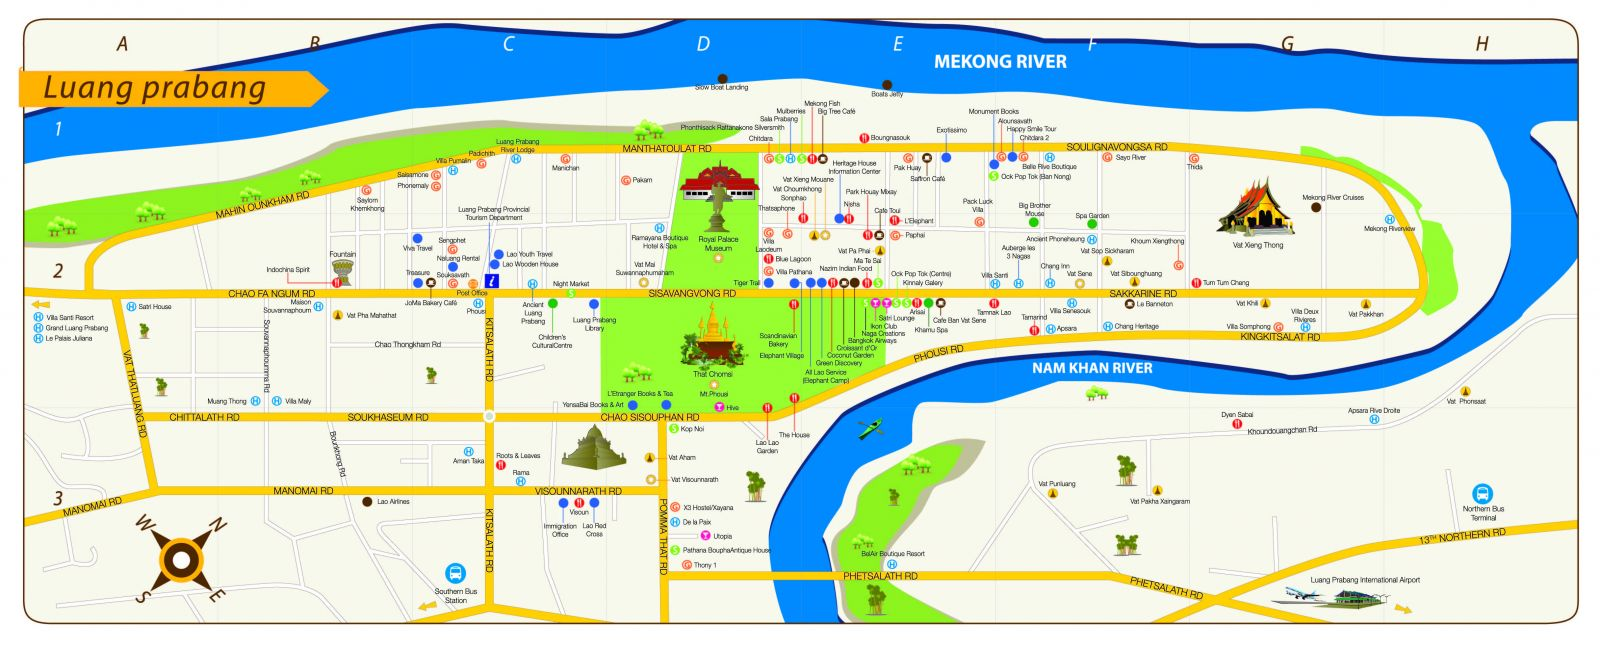 Luang prabang travel map.jpg